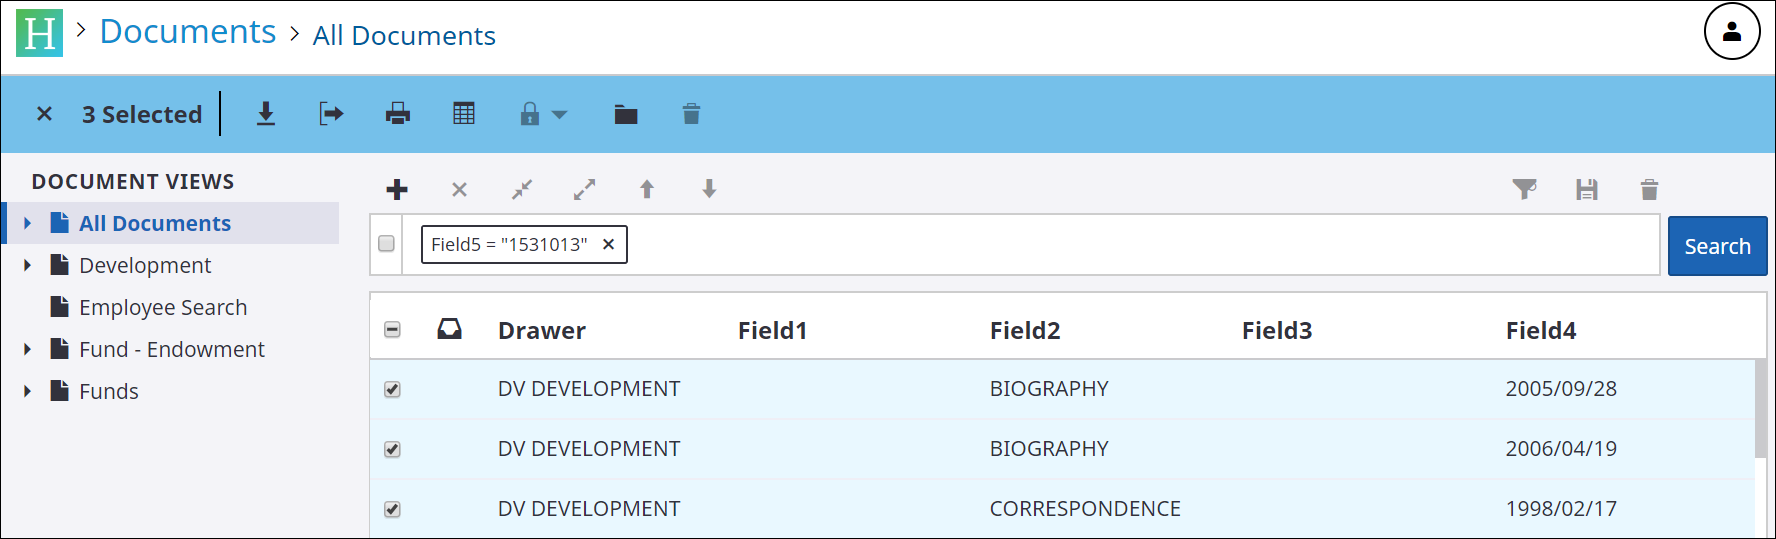 Select documents view screen shot